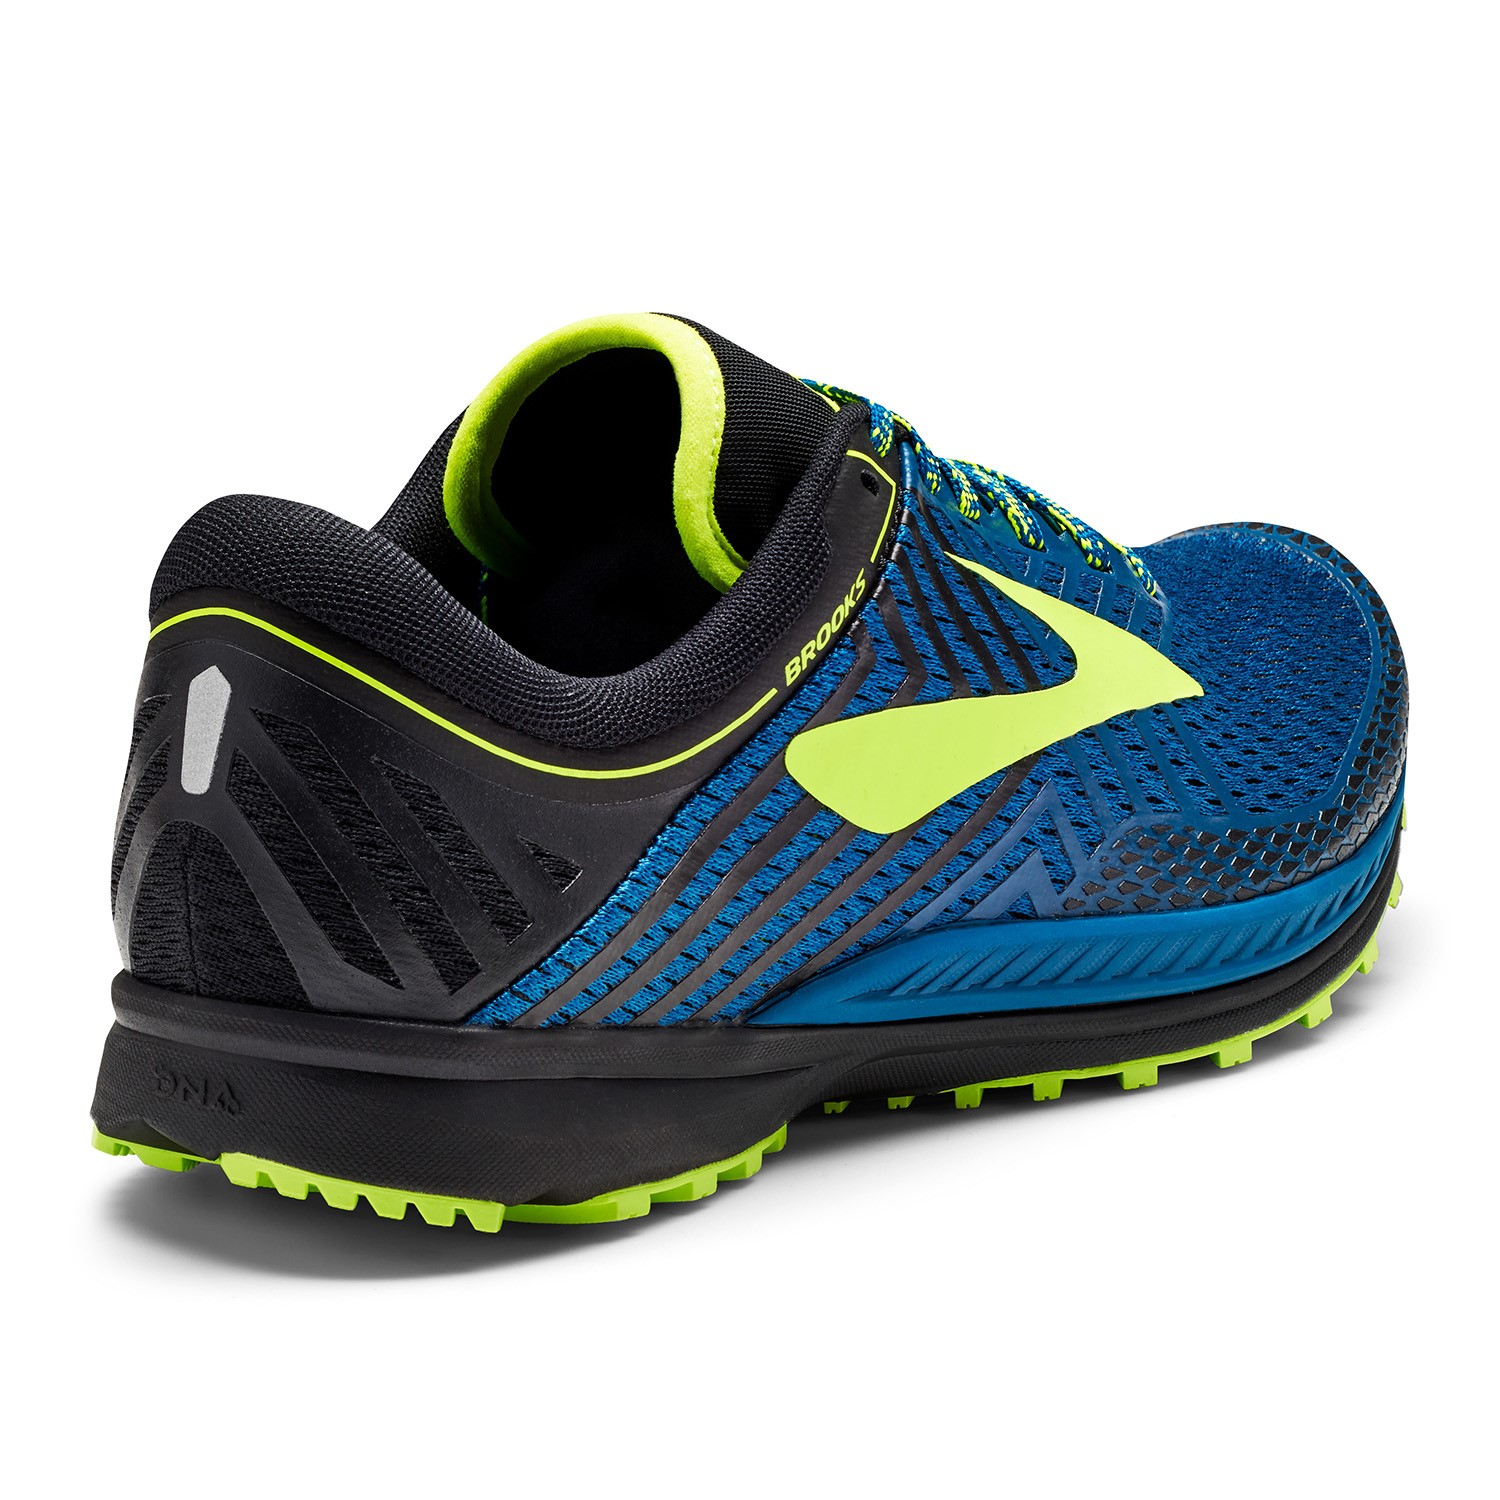 mazama men Brooks mazama biomogo dna midsole cushioning-dynamically adapts to every step and stride decoupled midfoot-allows the heel and forefoot to move independently for a powerful push-off.